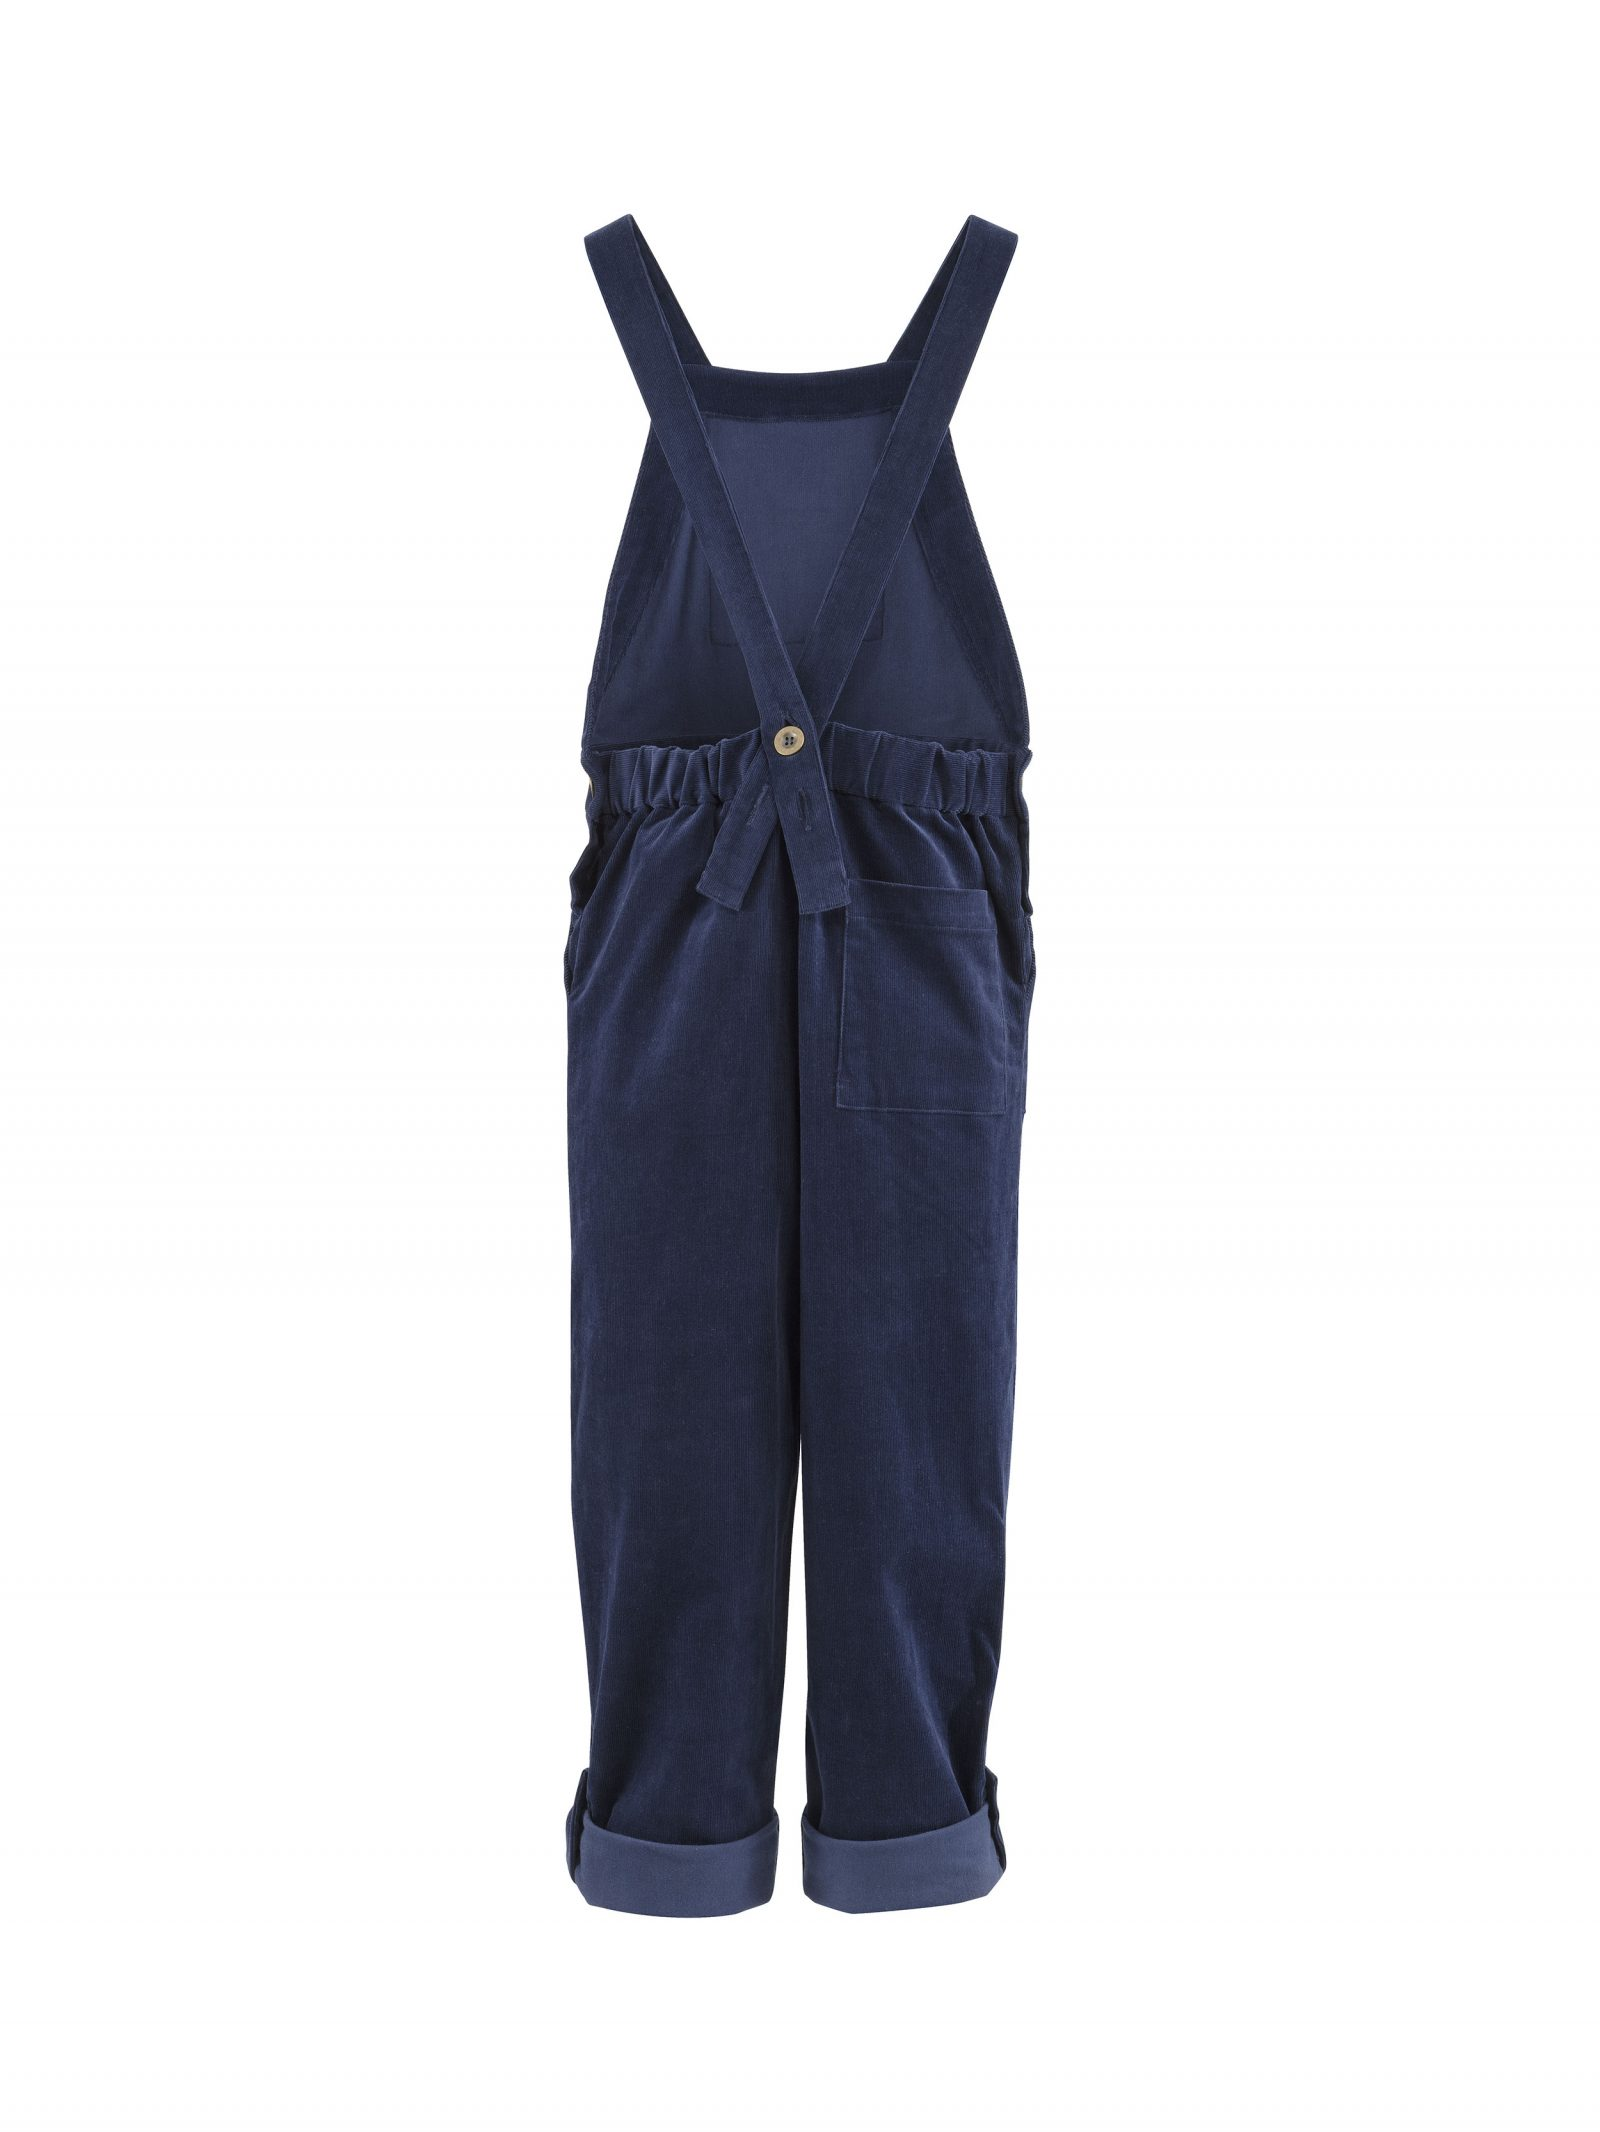 Maggie Dungarees in Blue - Back